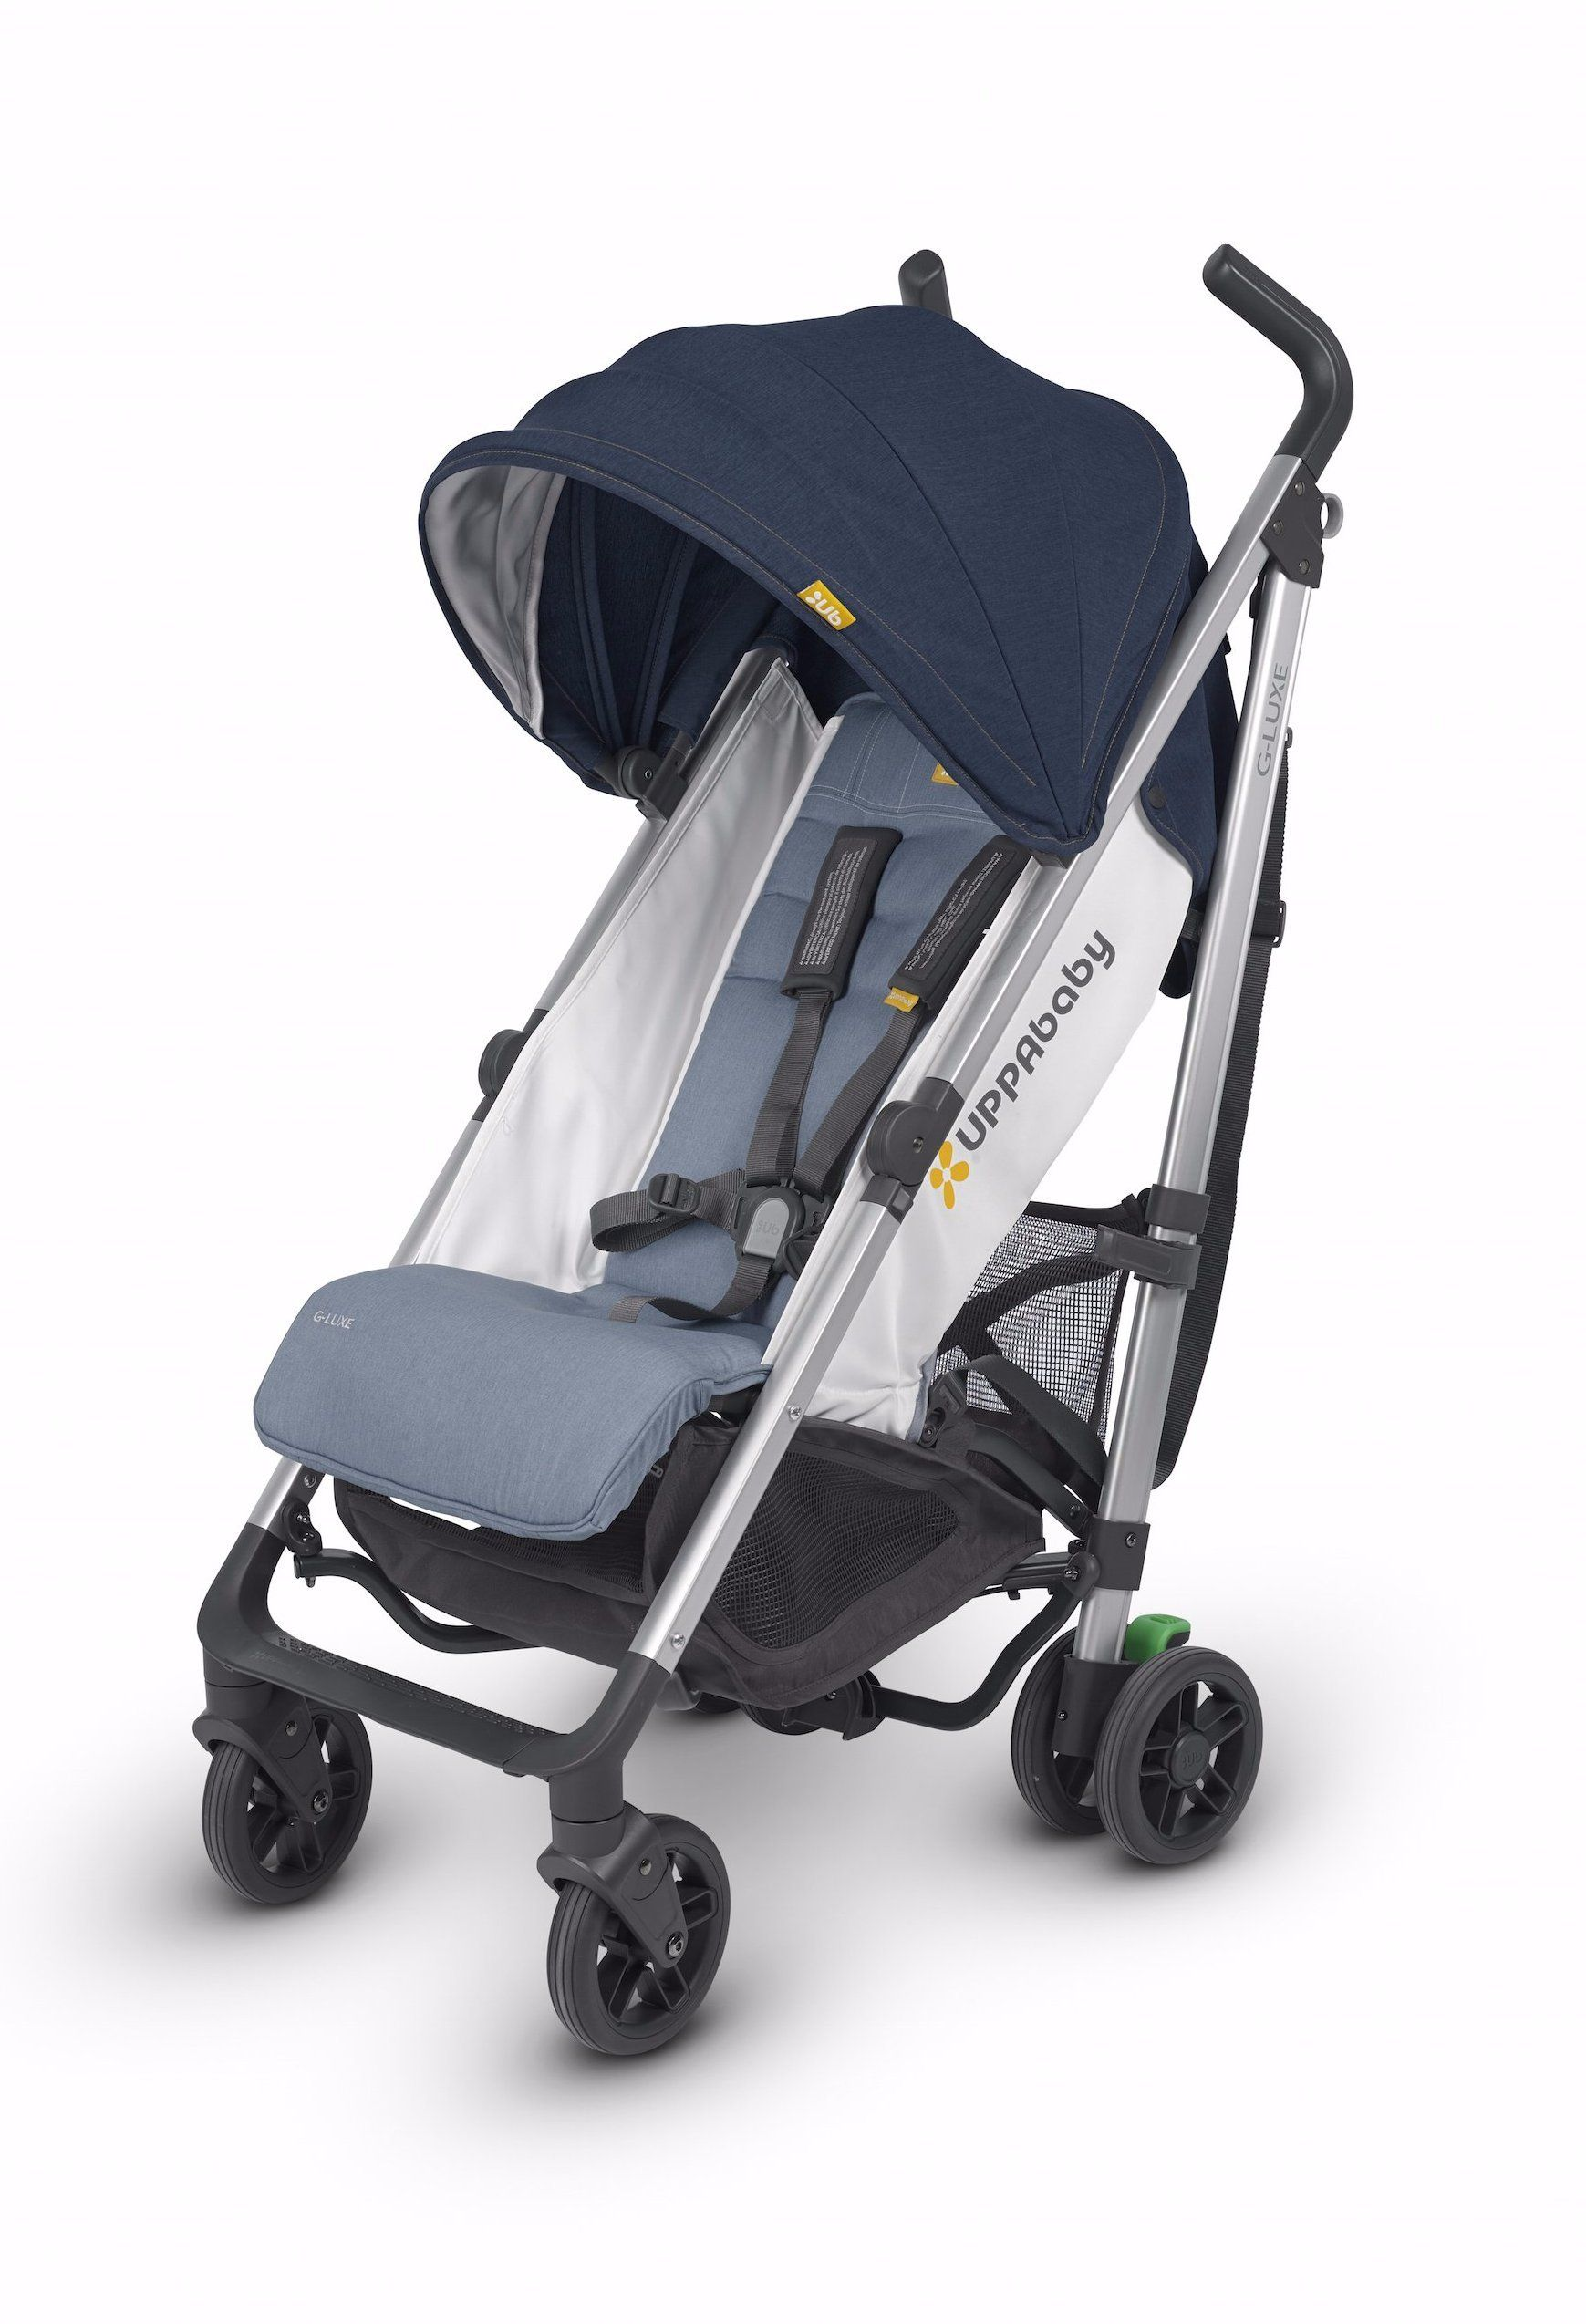 2018 UPPAbaby G LUXE Stroller